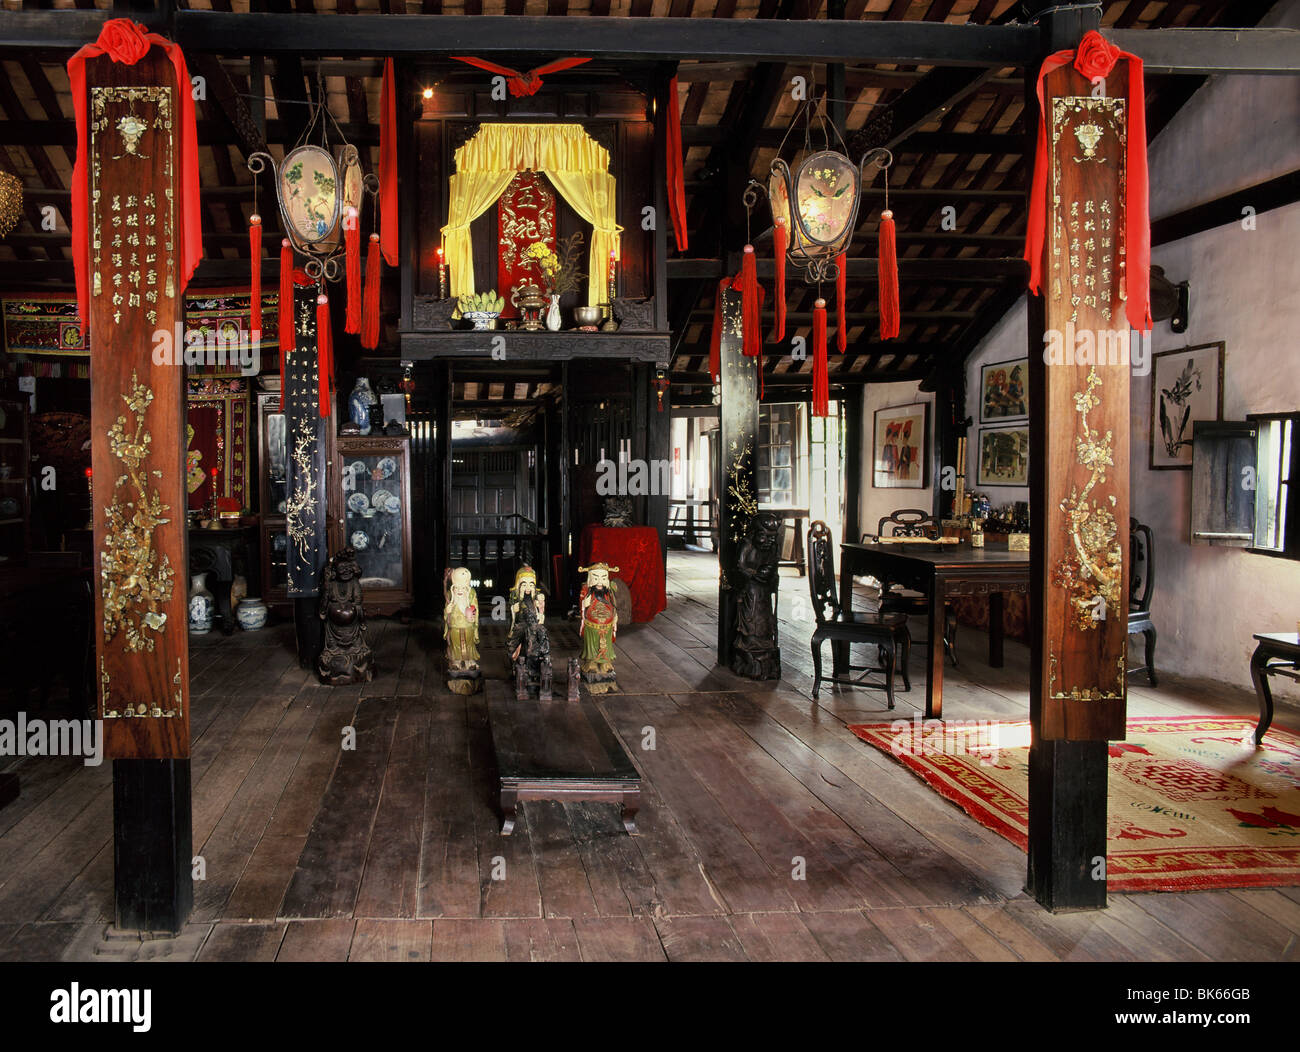 Upper floor with altars in the 18th century Phung Hung House, one of the oldest houses of Chinese traders in Hoi - Stock Image